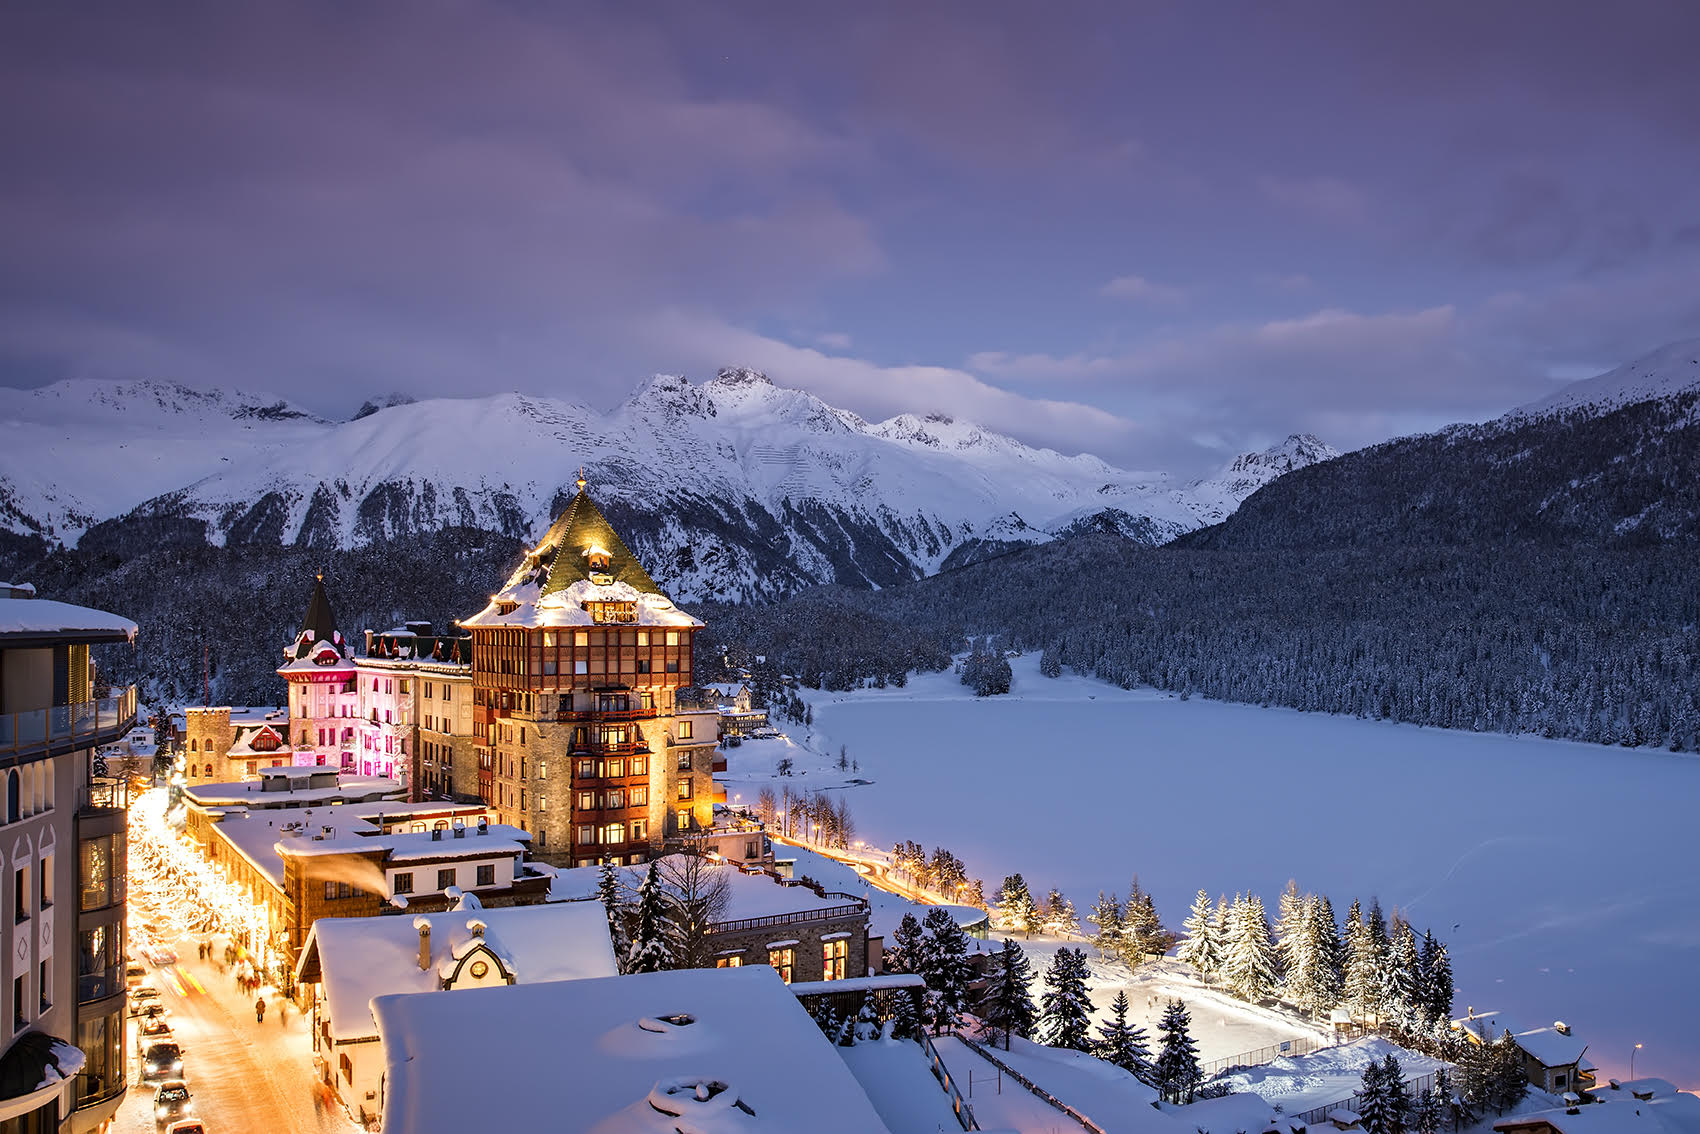 The Engadin Valley will host The World's Highest Electronic And Dance Music Festival